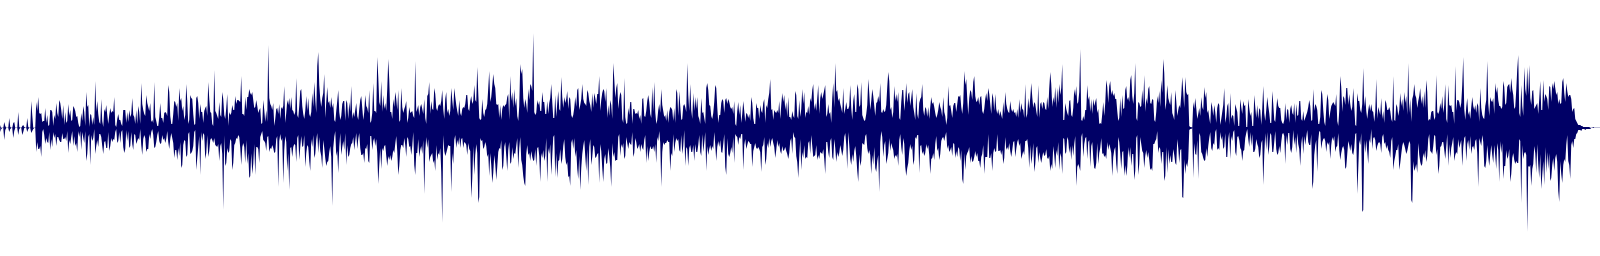 waveform of track #98145